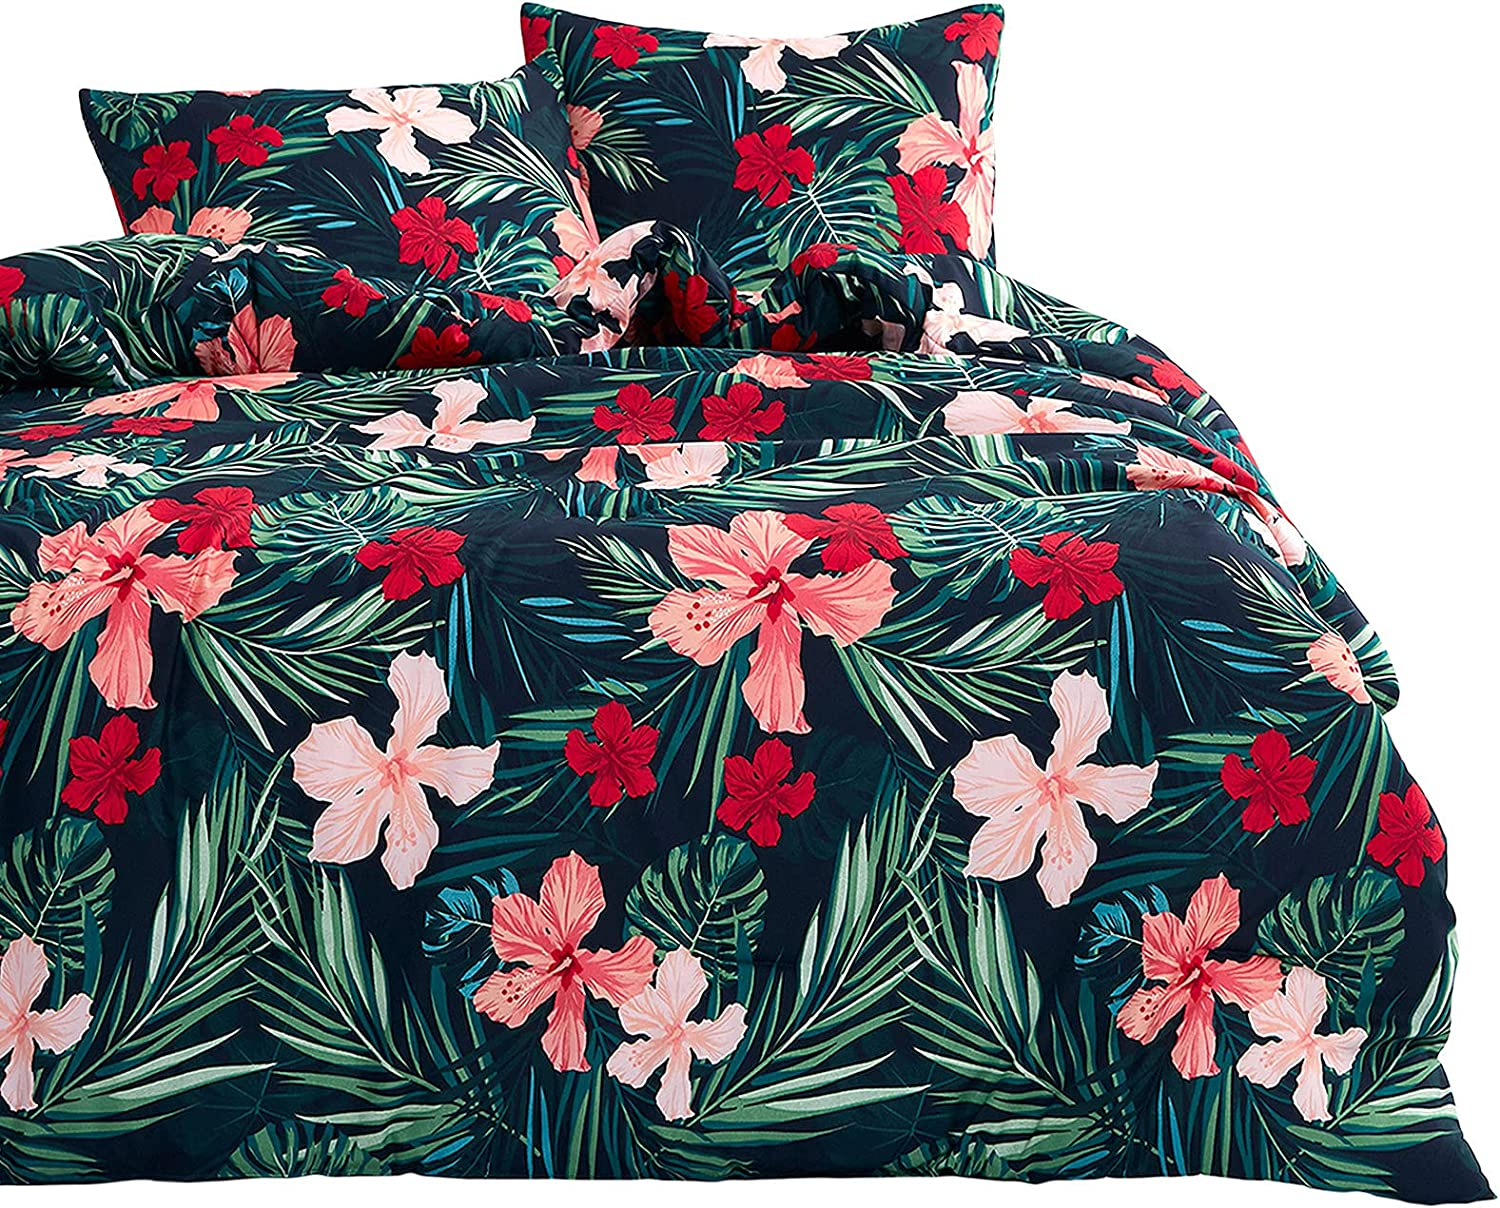 Wake In Cloud - Floral Free shipping anywhere in the nation Comforter Leav Set Tree Special Campaign Flowers Tropical